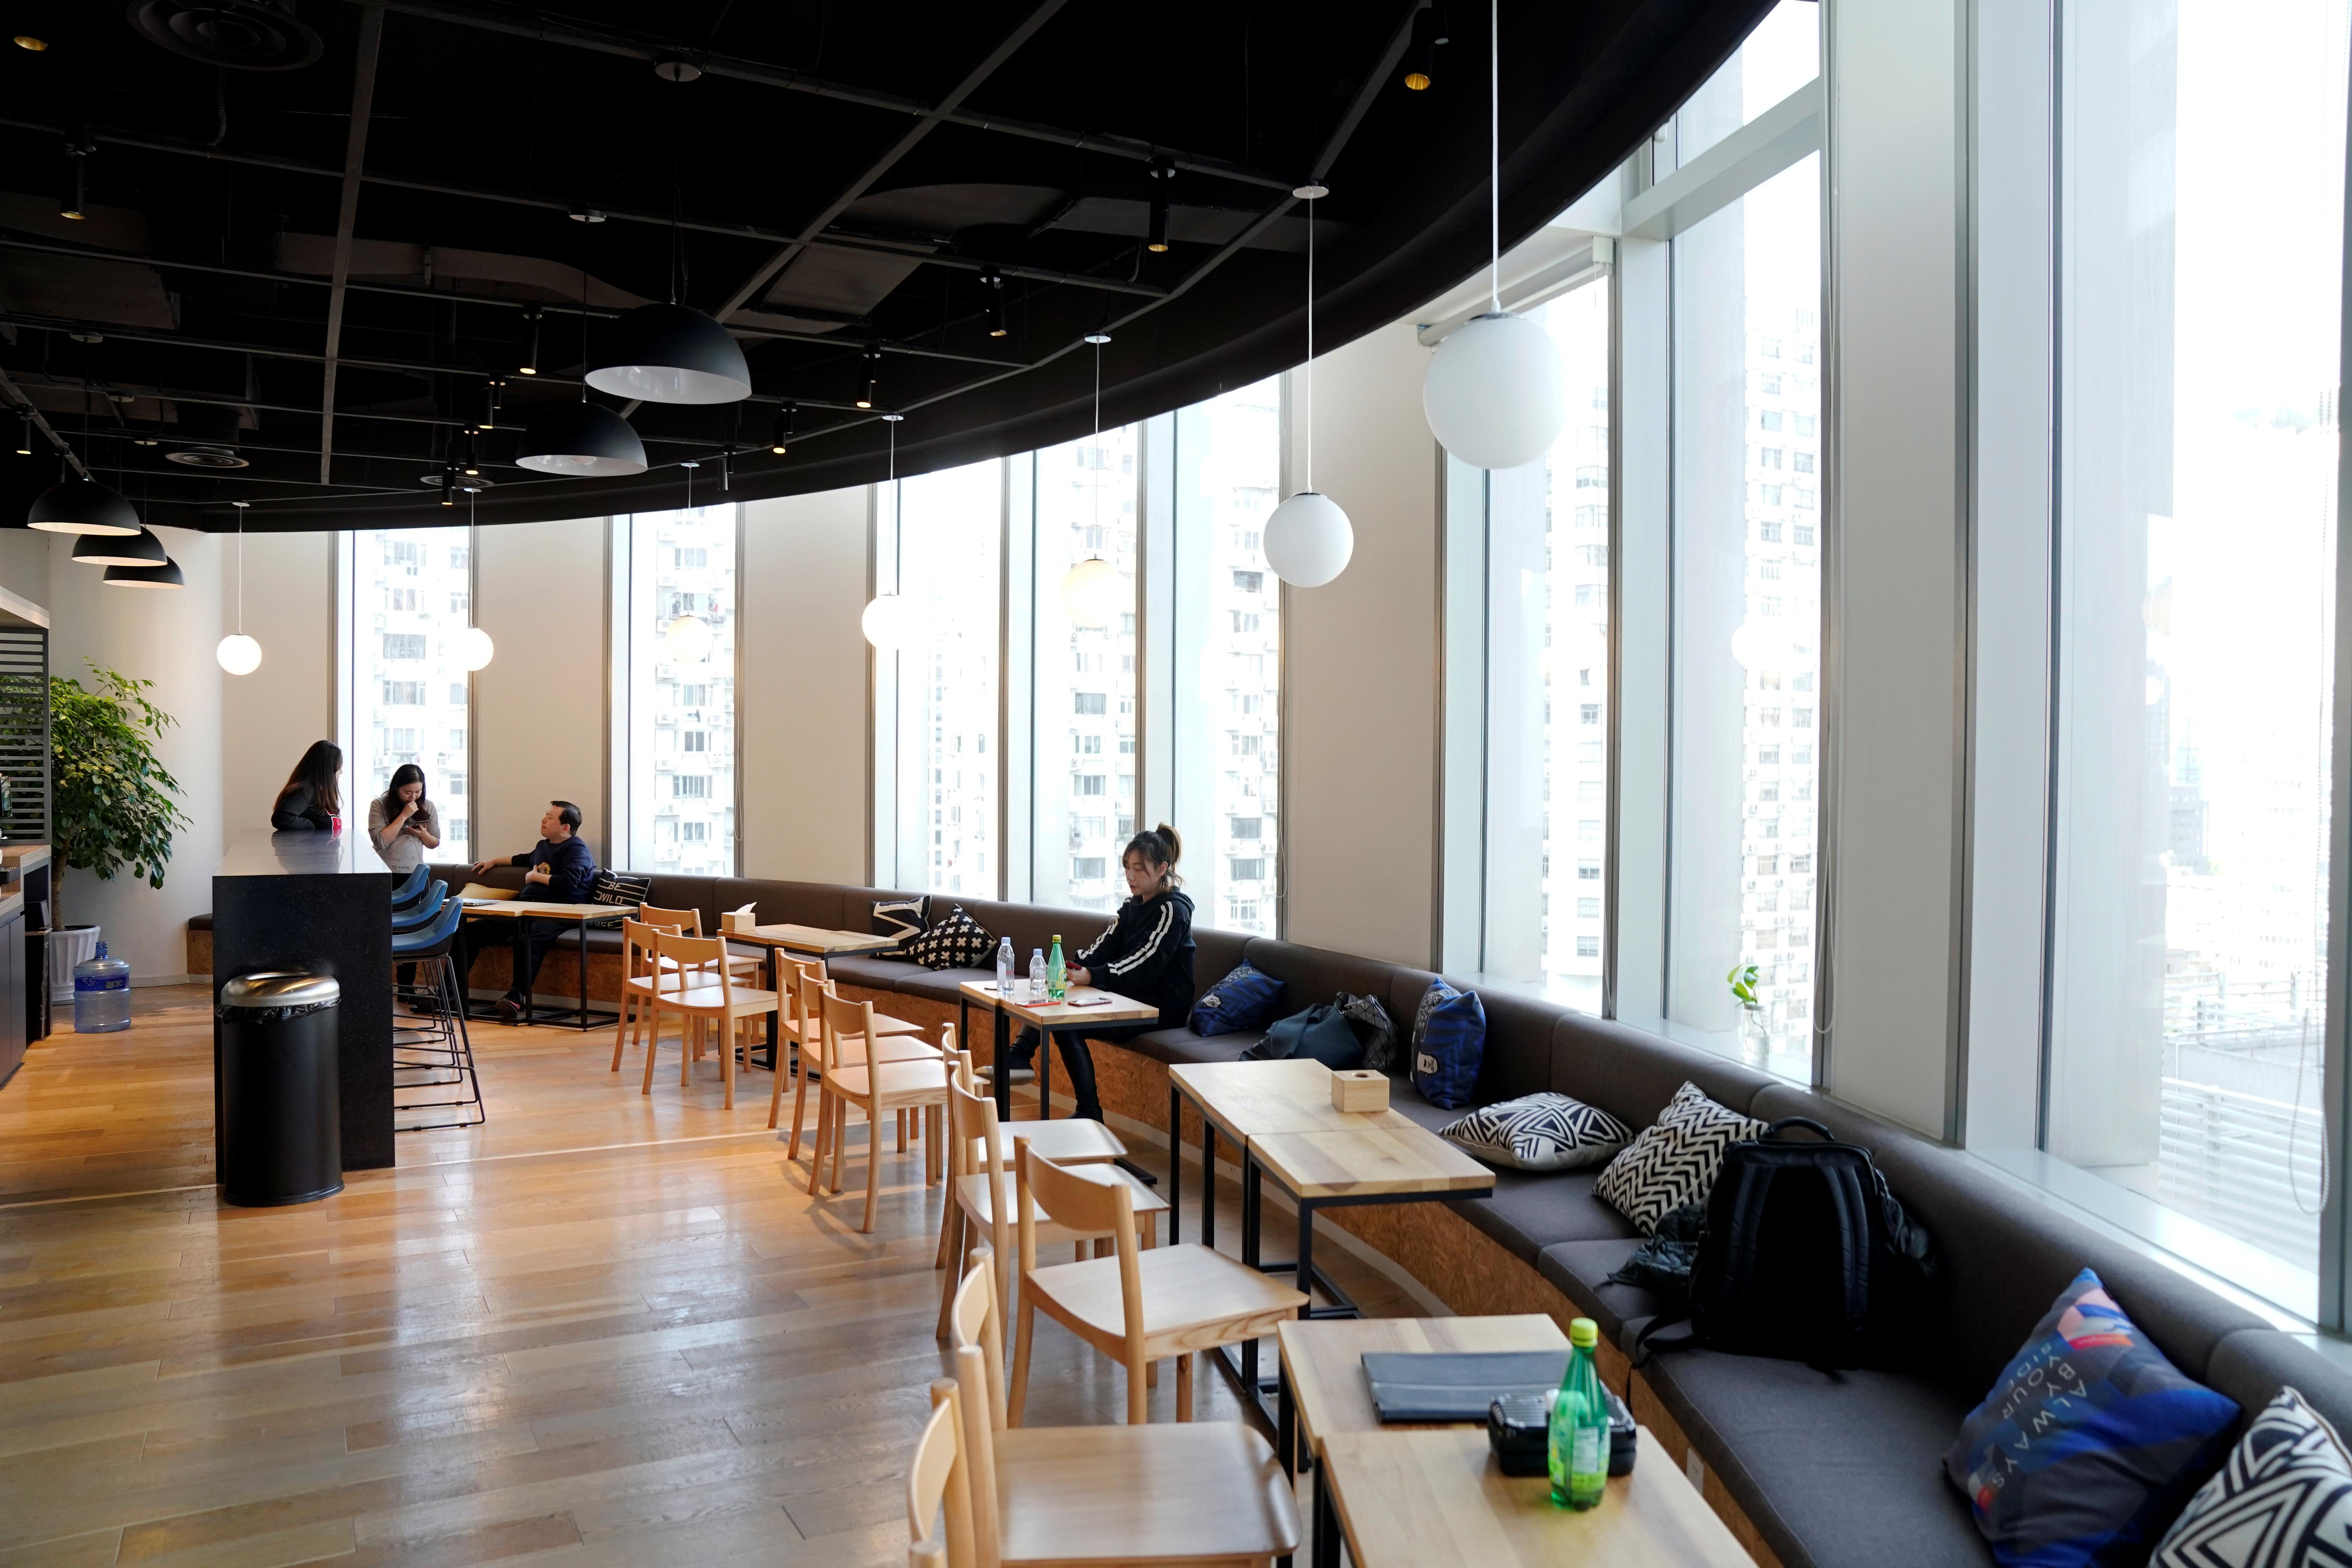 Exclusive: China's WeWork equivalent Ucommune files for U.S. IPO -...